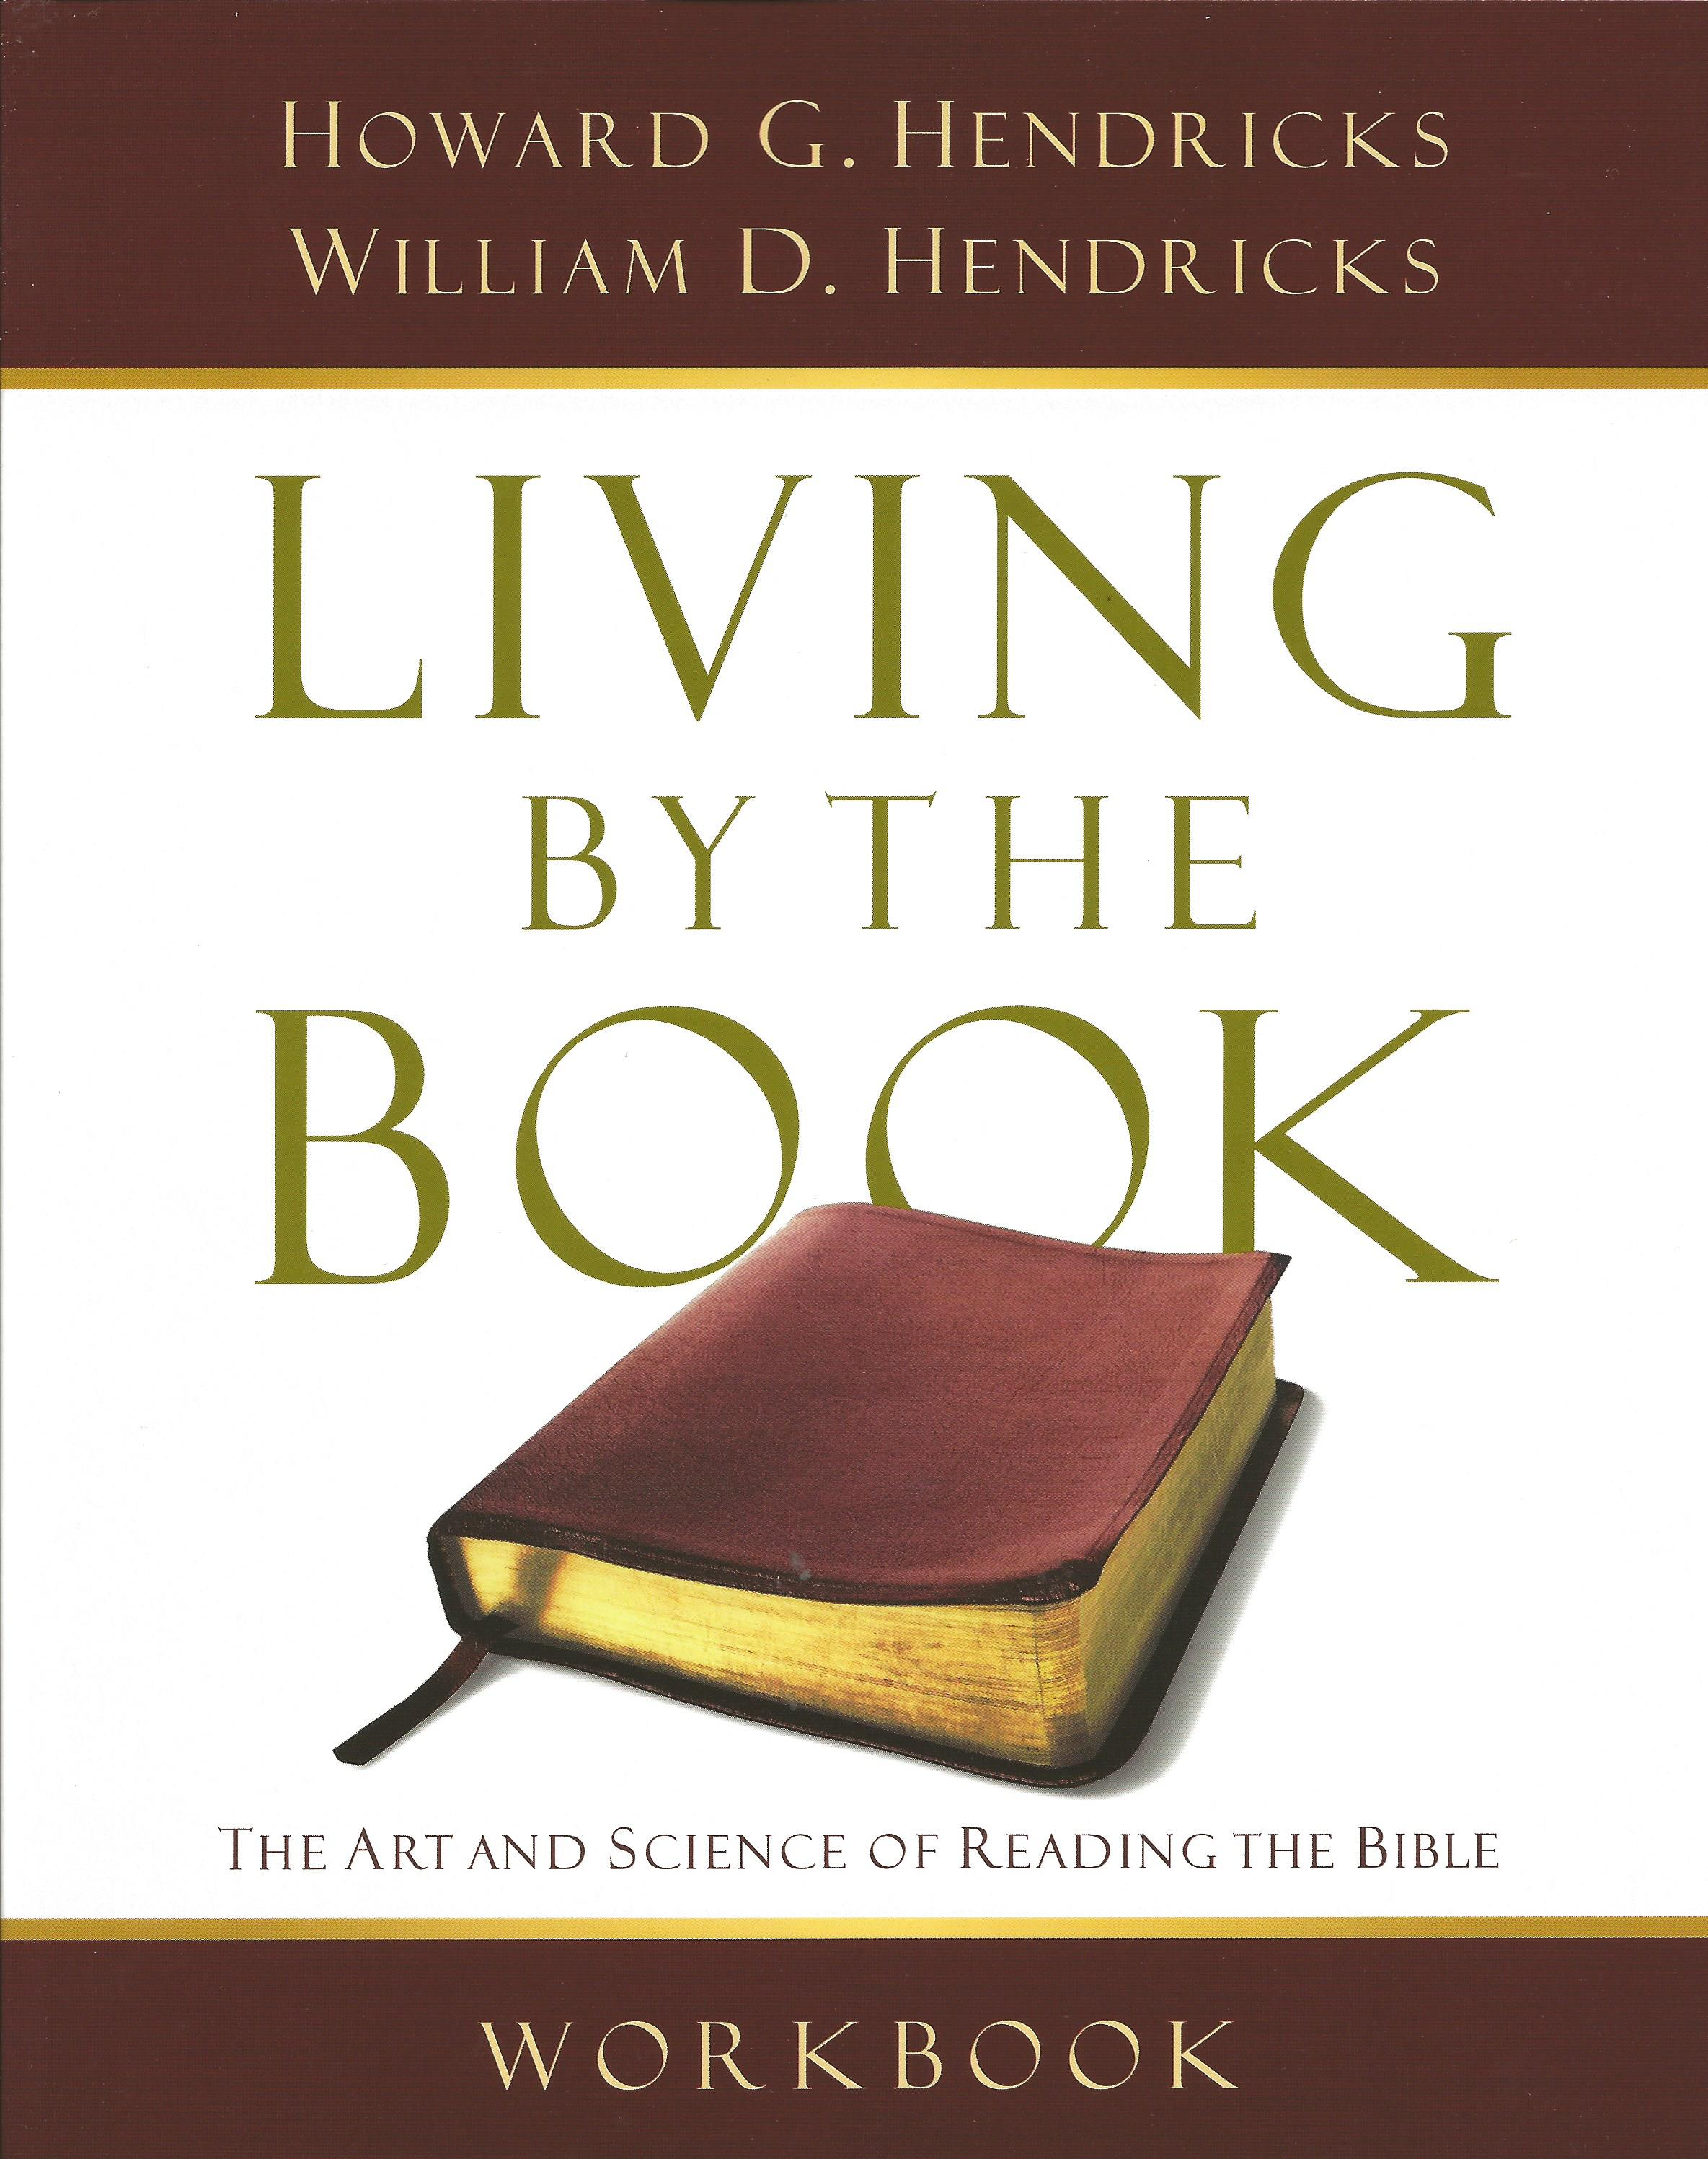 LIVING BY THE BOOK WORKBOOK HOWARD G. HENDRICKS, WILLIAM D.